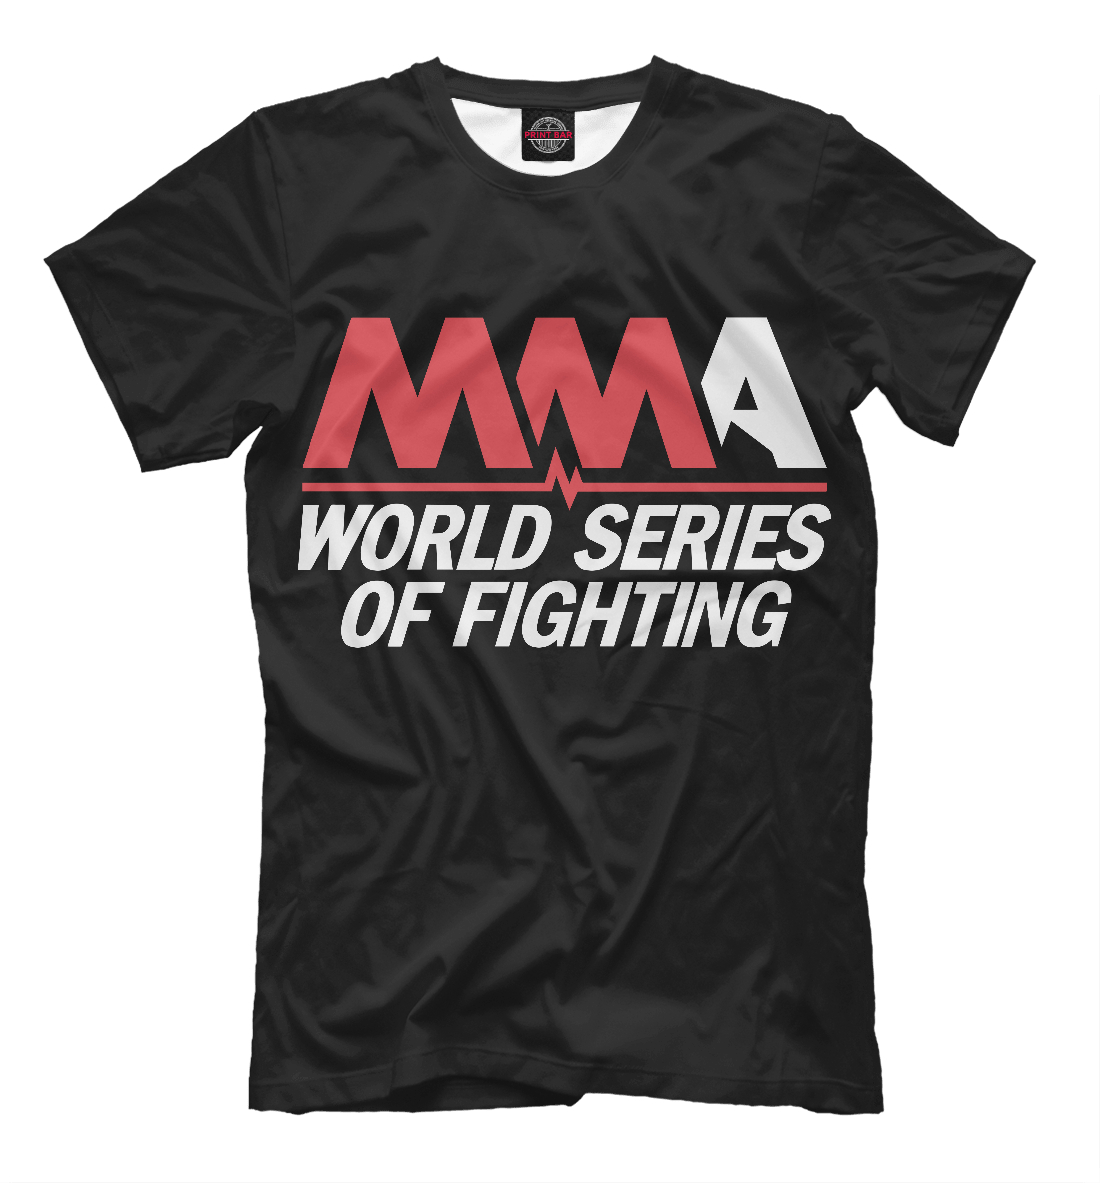 Купить MMA World Series Of Fighting, Printbar, Футболки, MNU-541183-fut-2